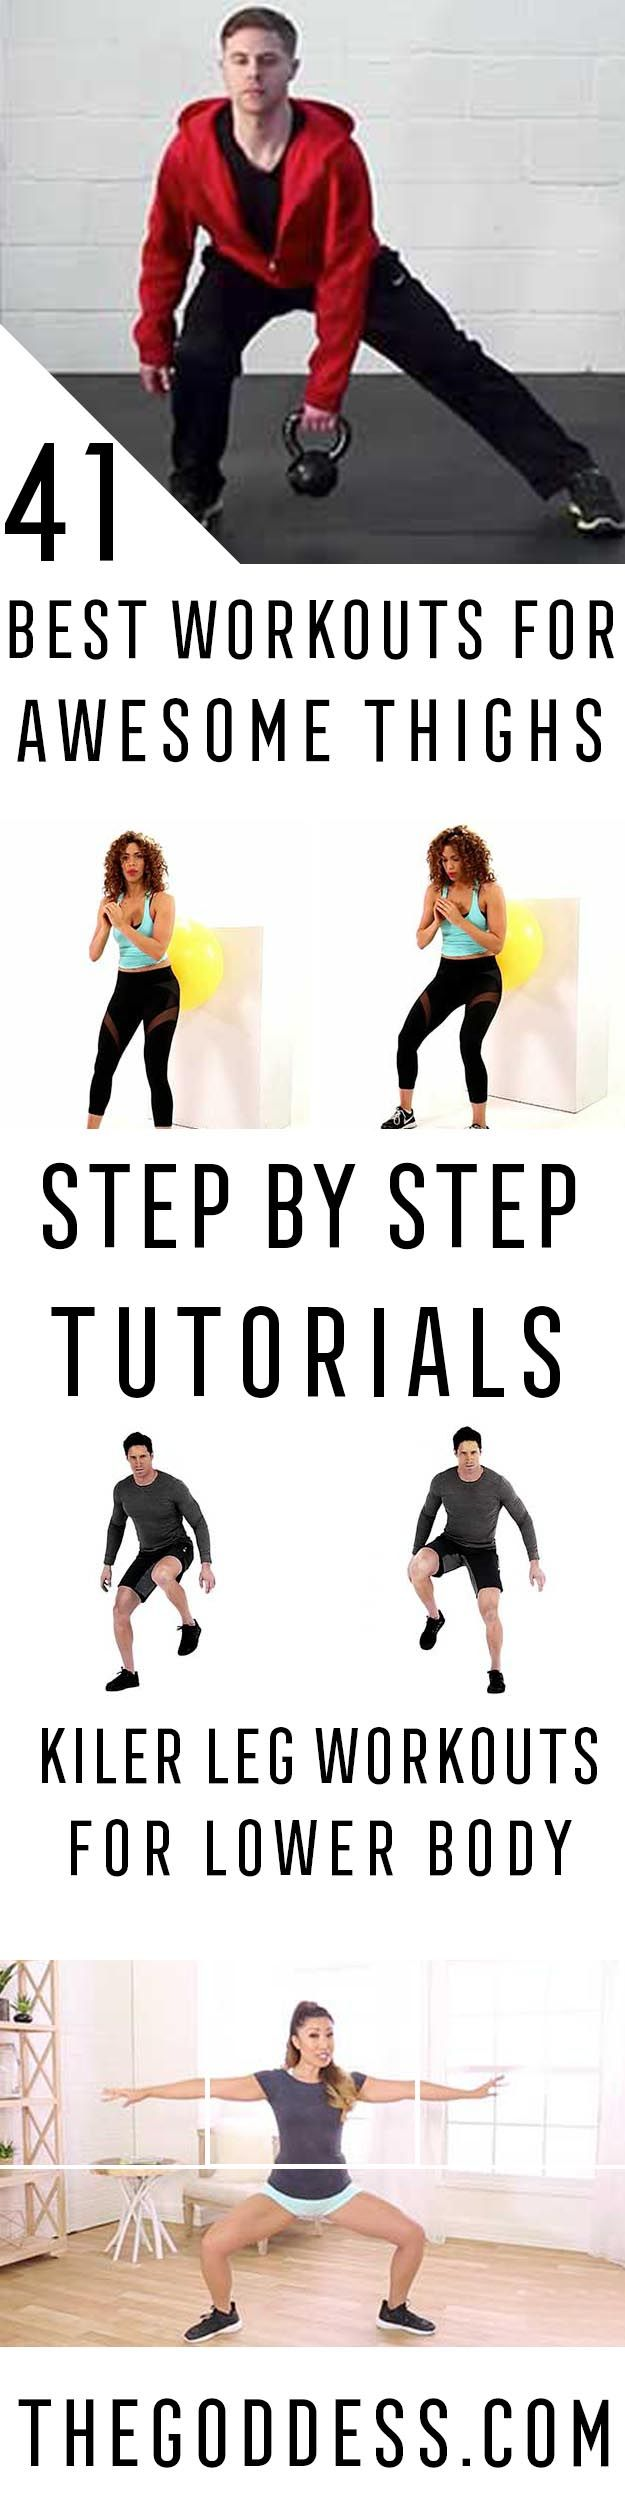 Best Workouts for Awesome Thighs - Step By Step Tutorials And Workouts To Sculpt Your Legs. Killer Leg Workouts For Toning Thighs And Work Outs To Get Those Lower Bodies In Shape. Exercise And Diet To Get Great Legs, A Great Butt, And For Toned Thighs. Use The Gym And Squats To Increase Weightless, Increase Fitness, And Get Those Glutes In Shape. Stronger Legs And Flat Abs Because Of Increased Metabolism Leads To Losing Weight. https://thegoddess.com/workouts-thighs